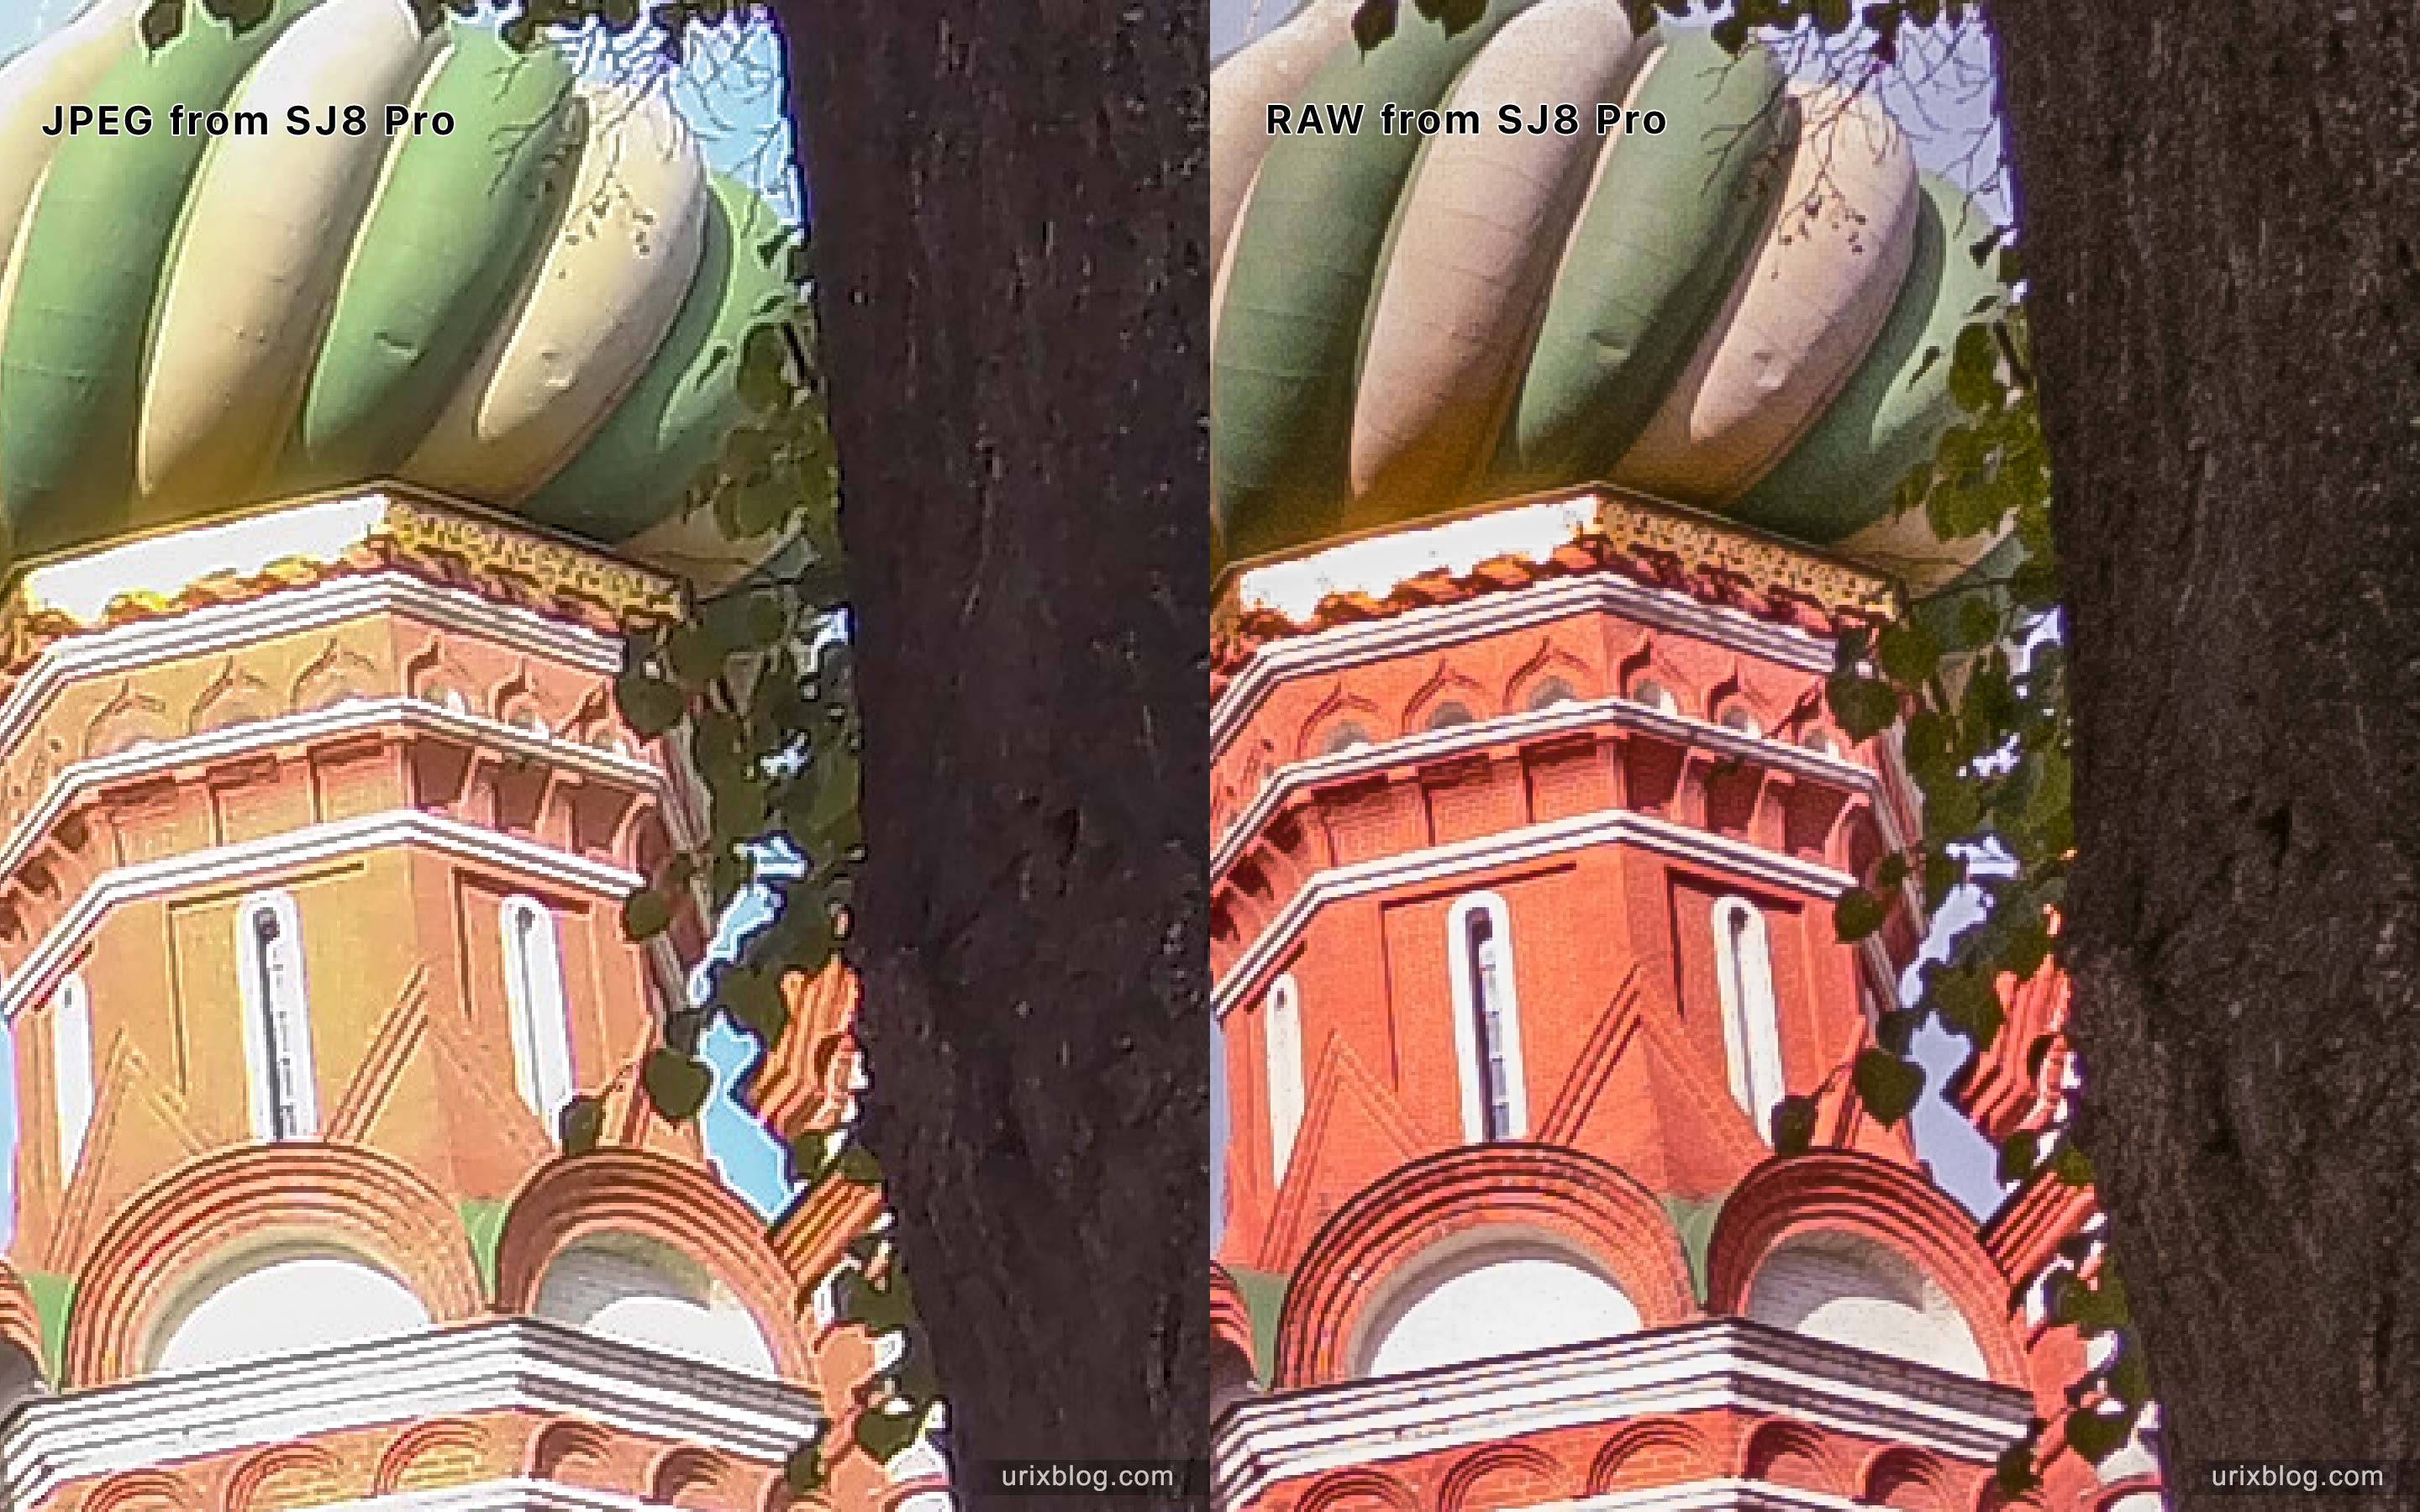 3D Stereoscopic photos from all over the world – UrixBlog